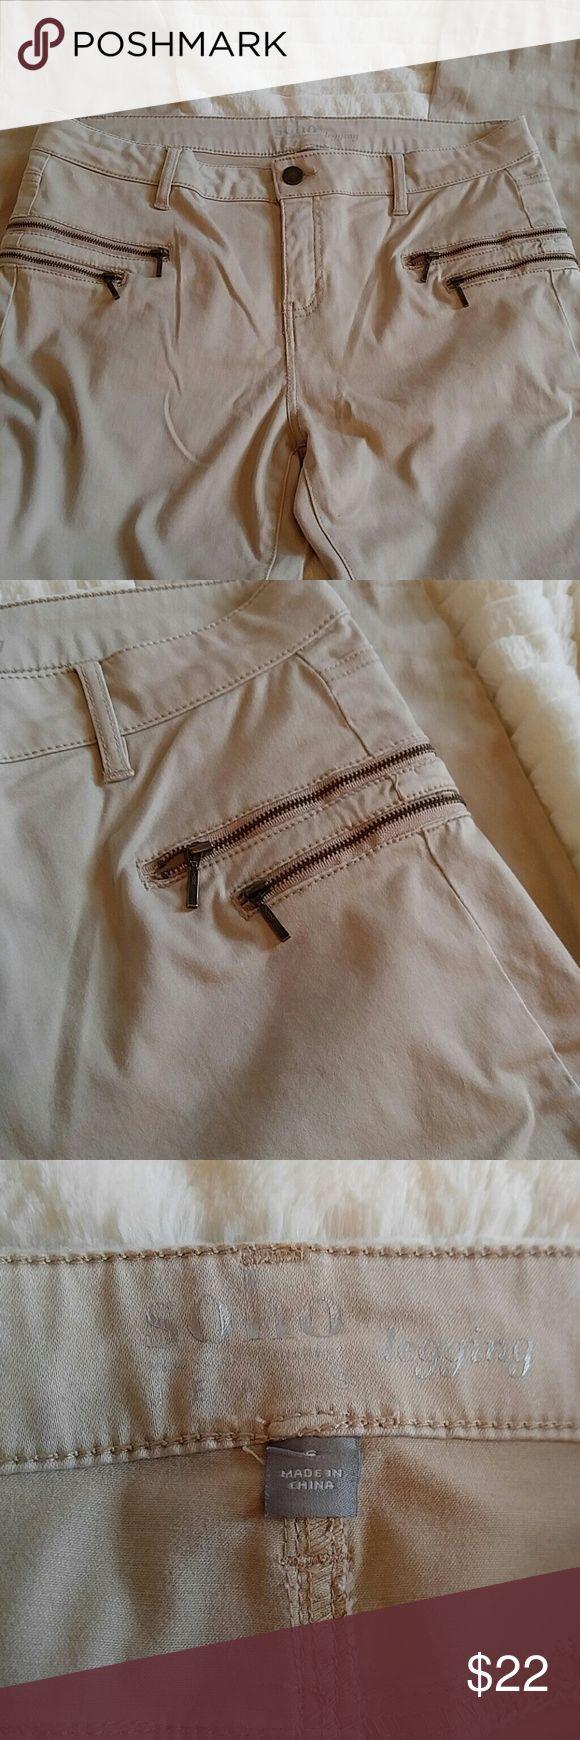 "Khaki leggings with awesome zipper accent Amazing leggings with button close and real pockets. 9"" rise.  30"" inseam    Why buy from me? 💋Most Items New with tags or worn once 💋Smoke free home  💋TOP 10% Seller  💋TOP RATED 💋 FAST SHIPPER   💋ACCEPT MOST OFFERS 💋BUNDLE DISCOUNT OF 20% 💋Allow EXCHANGES 💋Speedy response for questions  ❤Let me know how I can help & HAPPY POSHING!!! 💕💋 New York & Company Jeans Skinny"